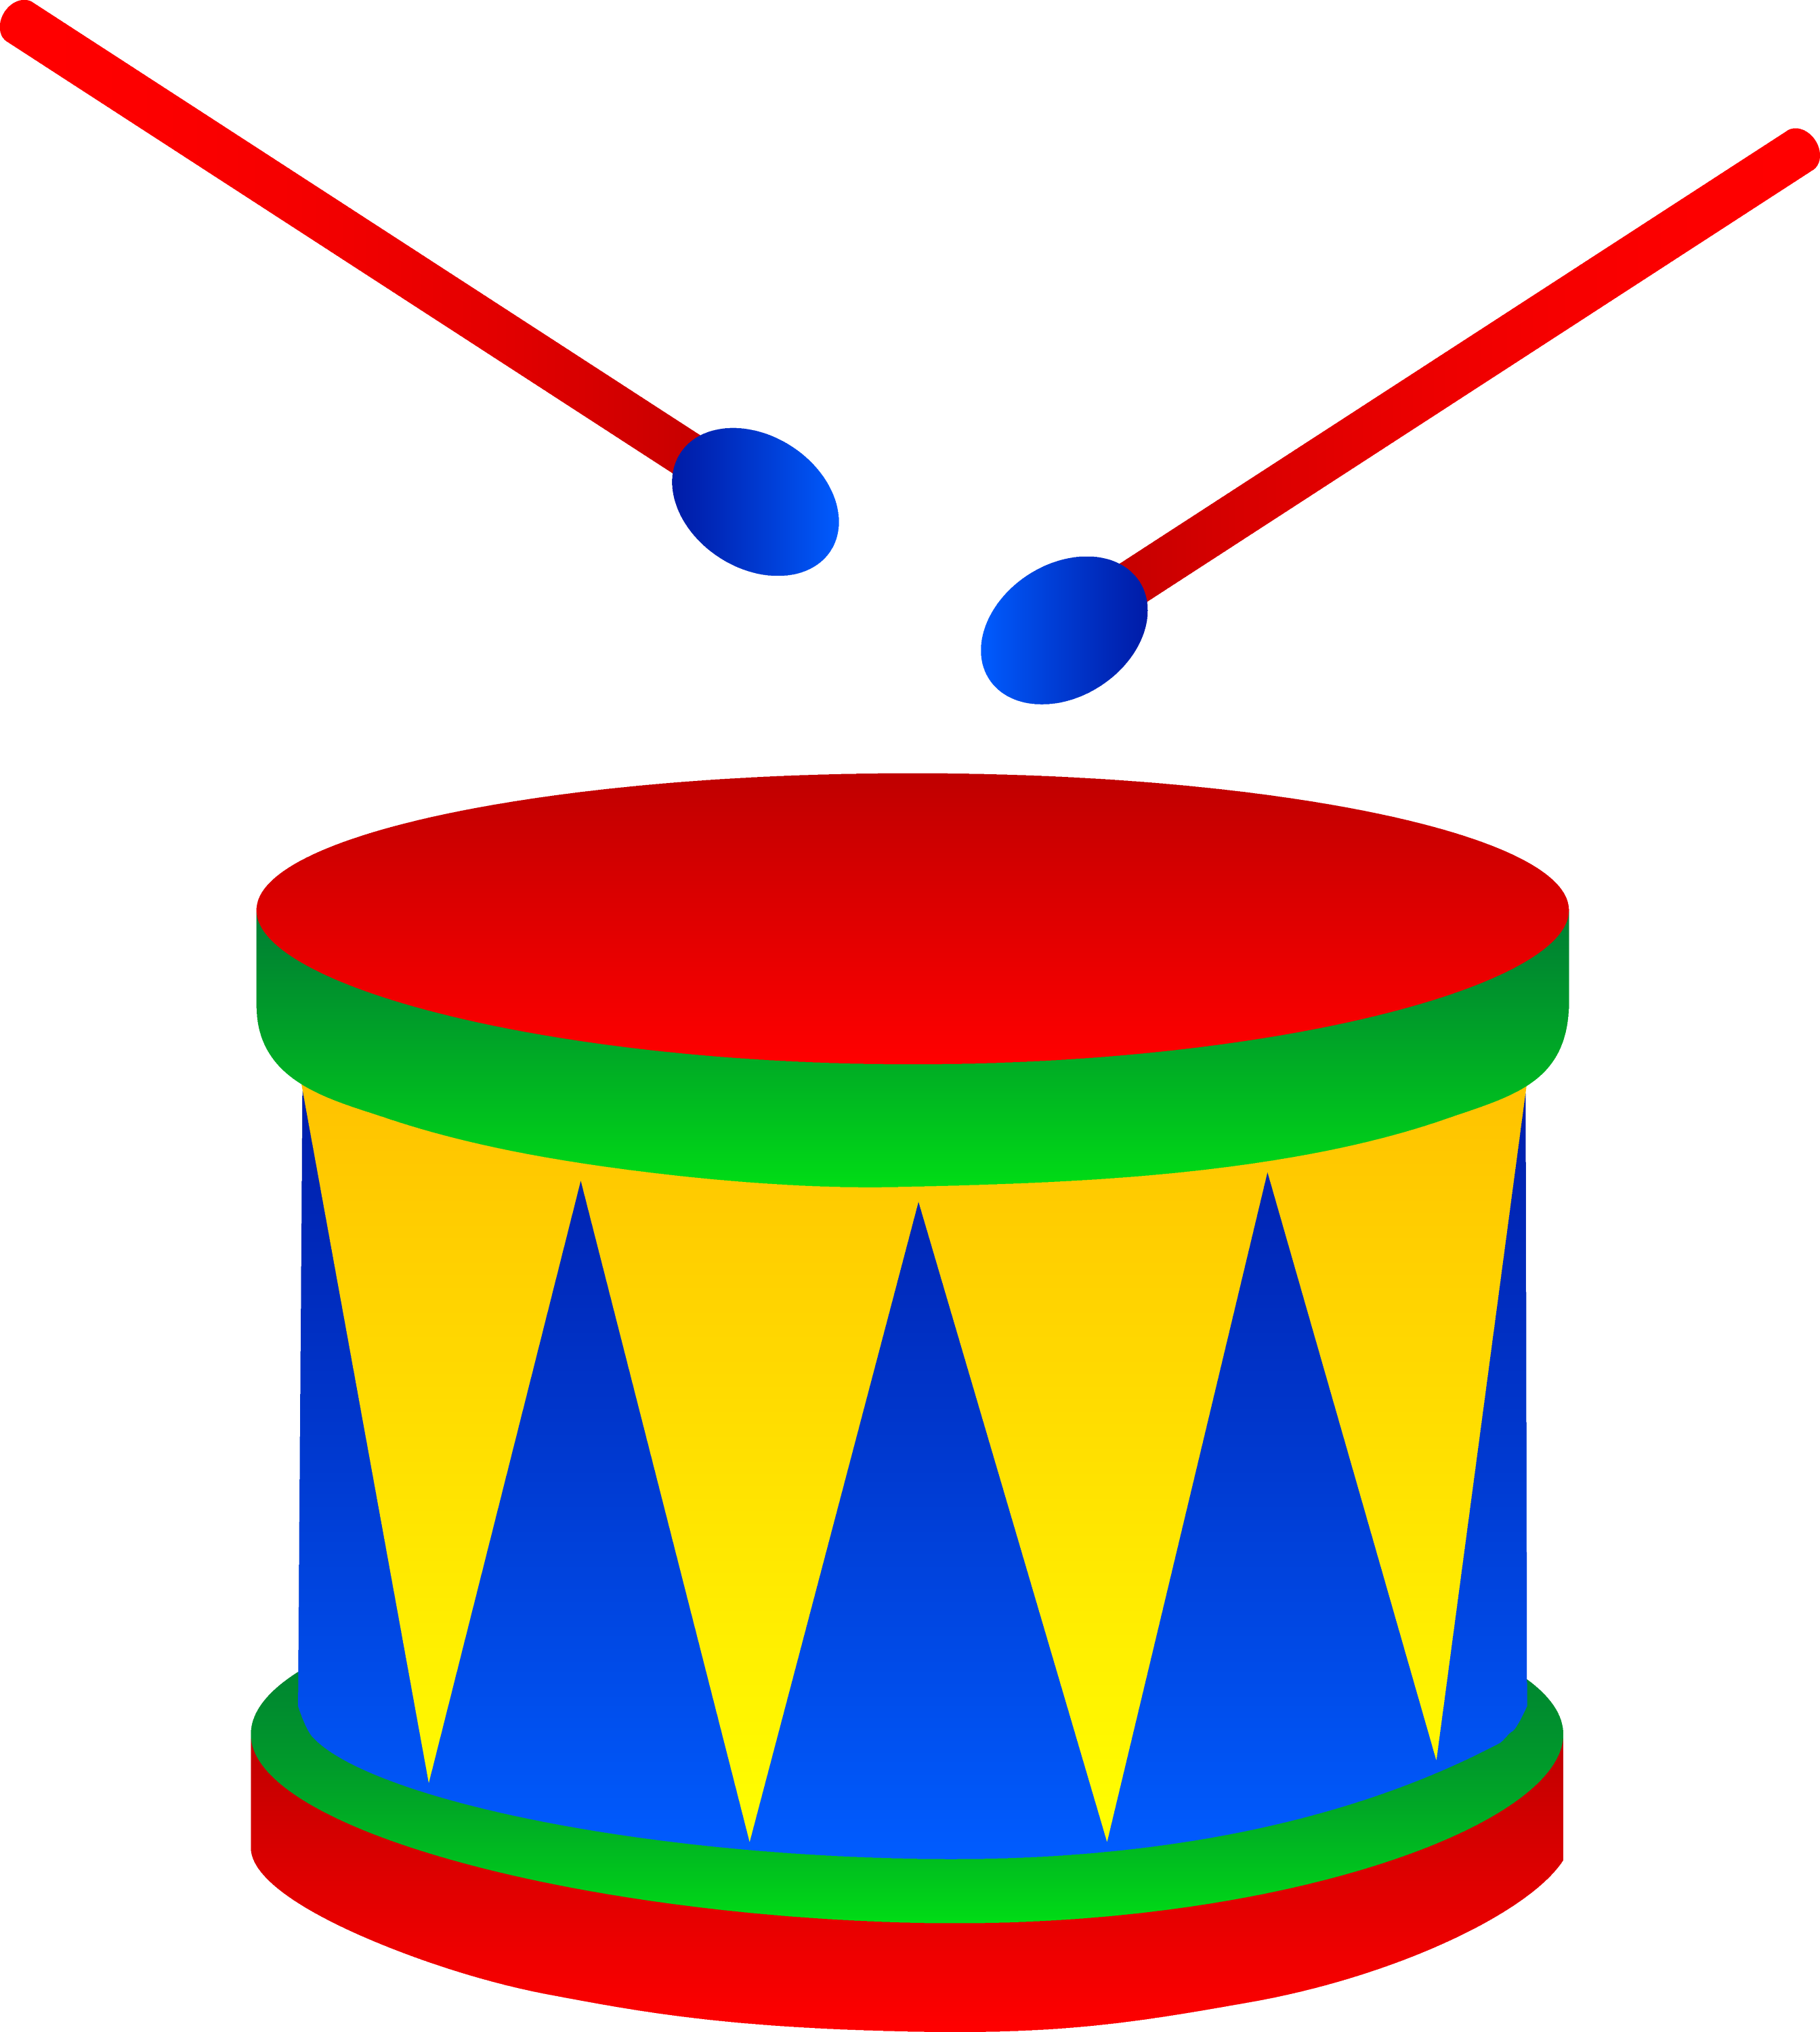 Marching Drum With Drumsticks - Free Clip Art